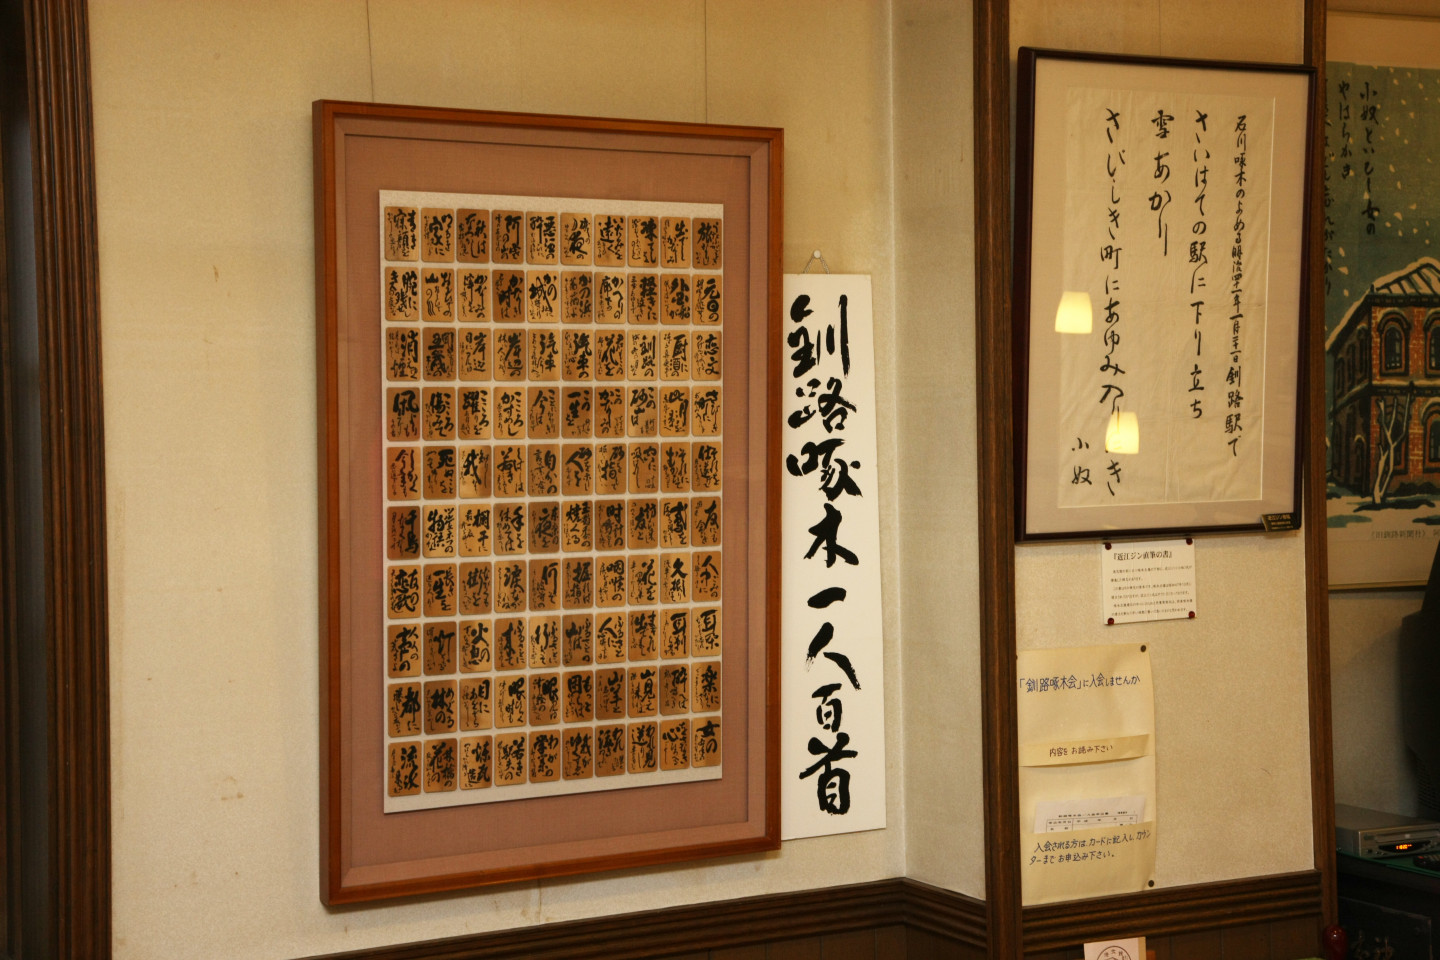 Takuboku composes poetry about Kushiro while working at a local newspaper